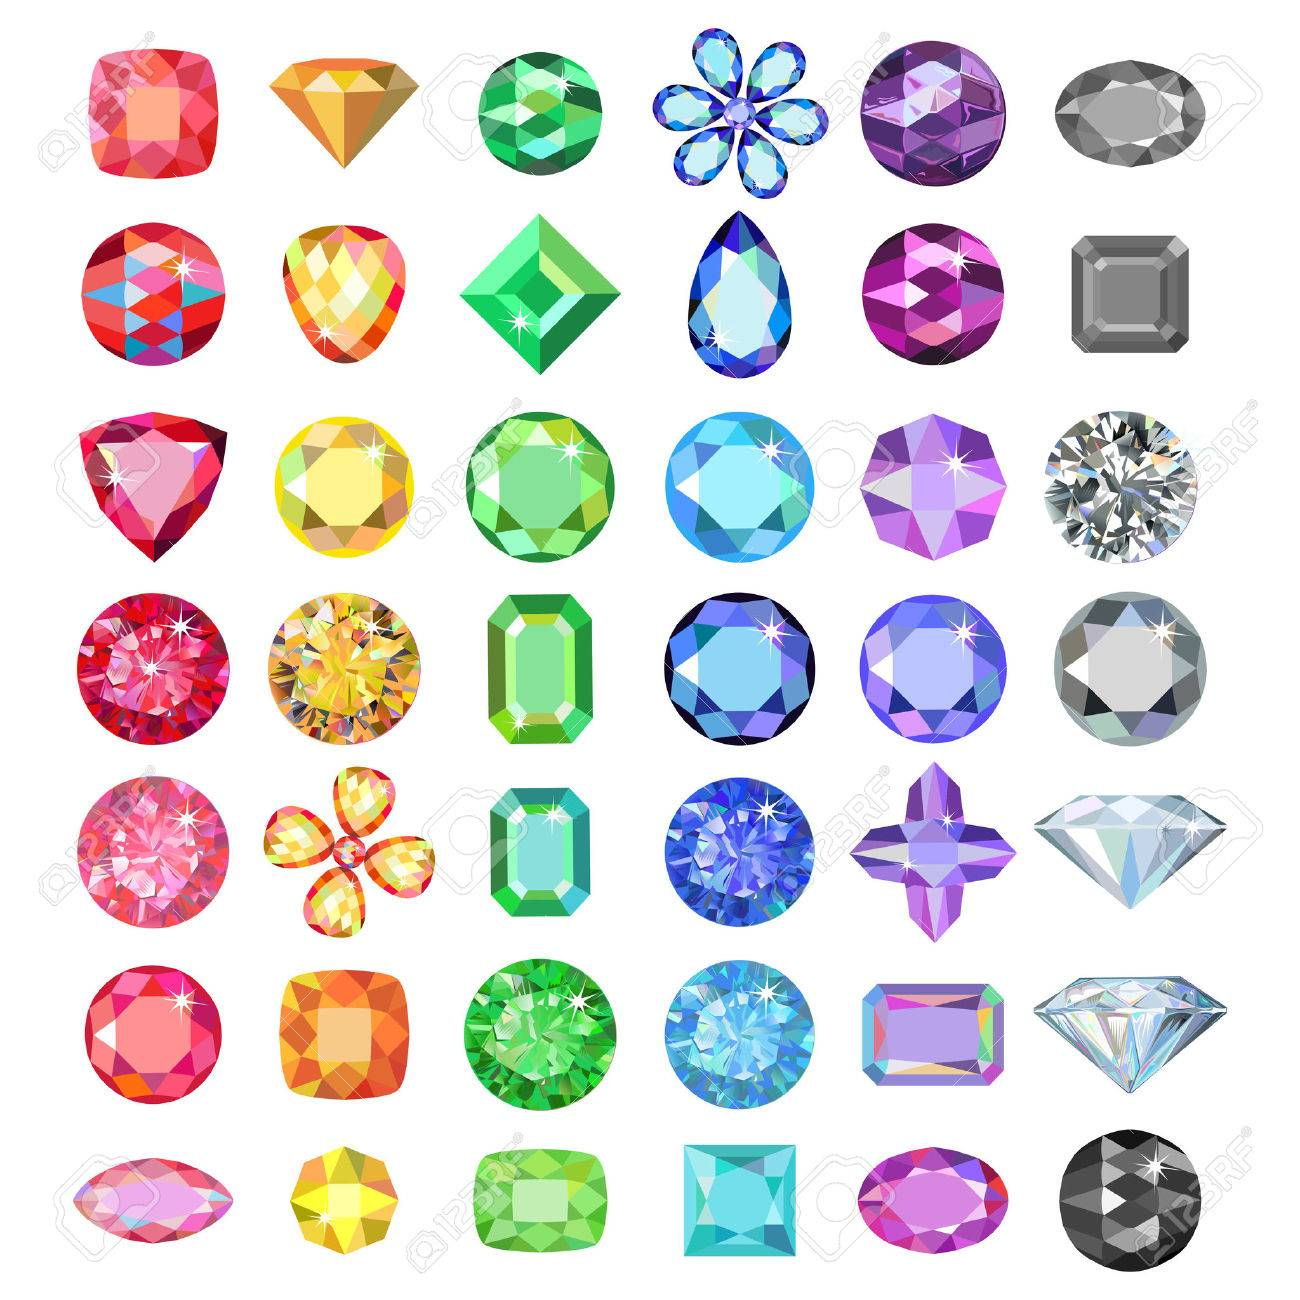 Popular low poly colored gems cuts set gradation by color of the rainbow isolated on white background, illustration - 53442665